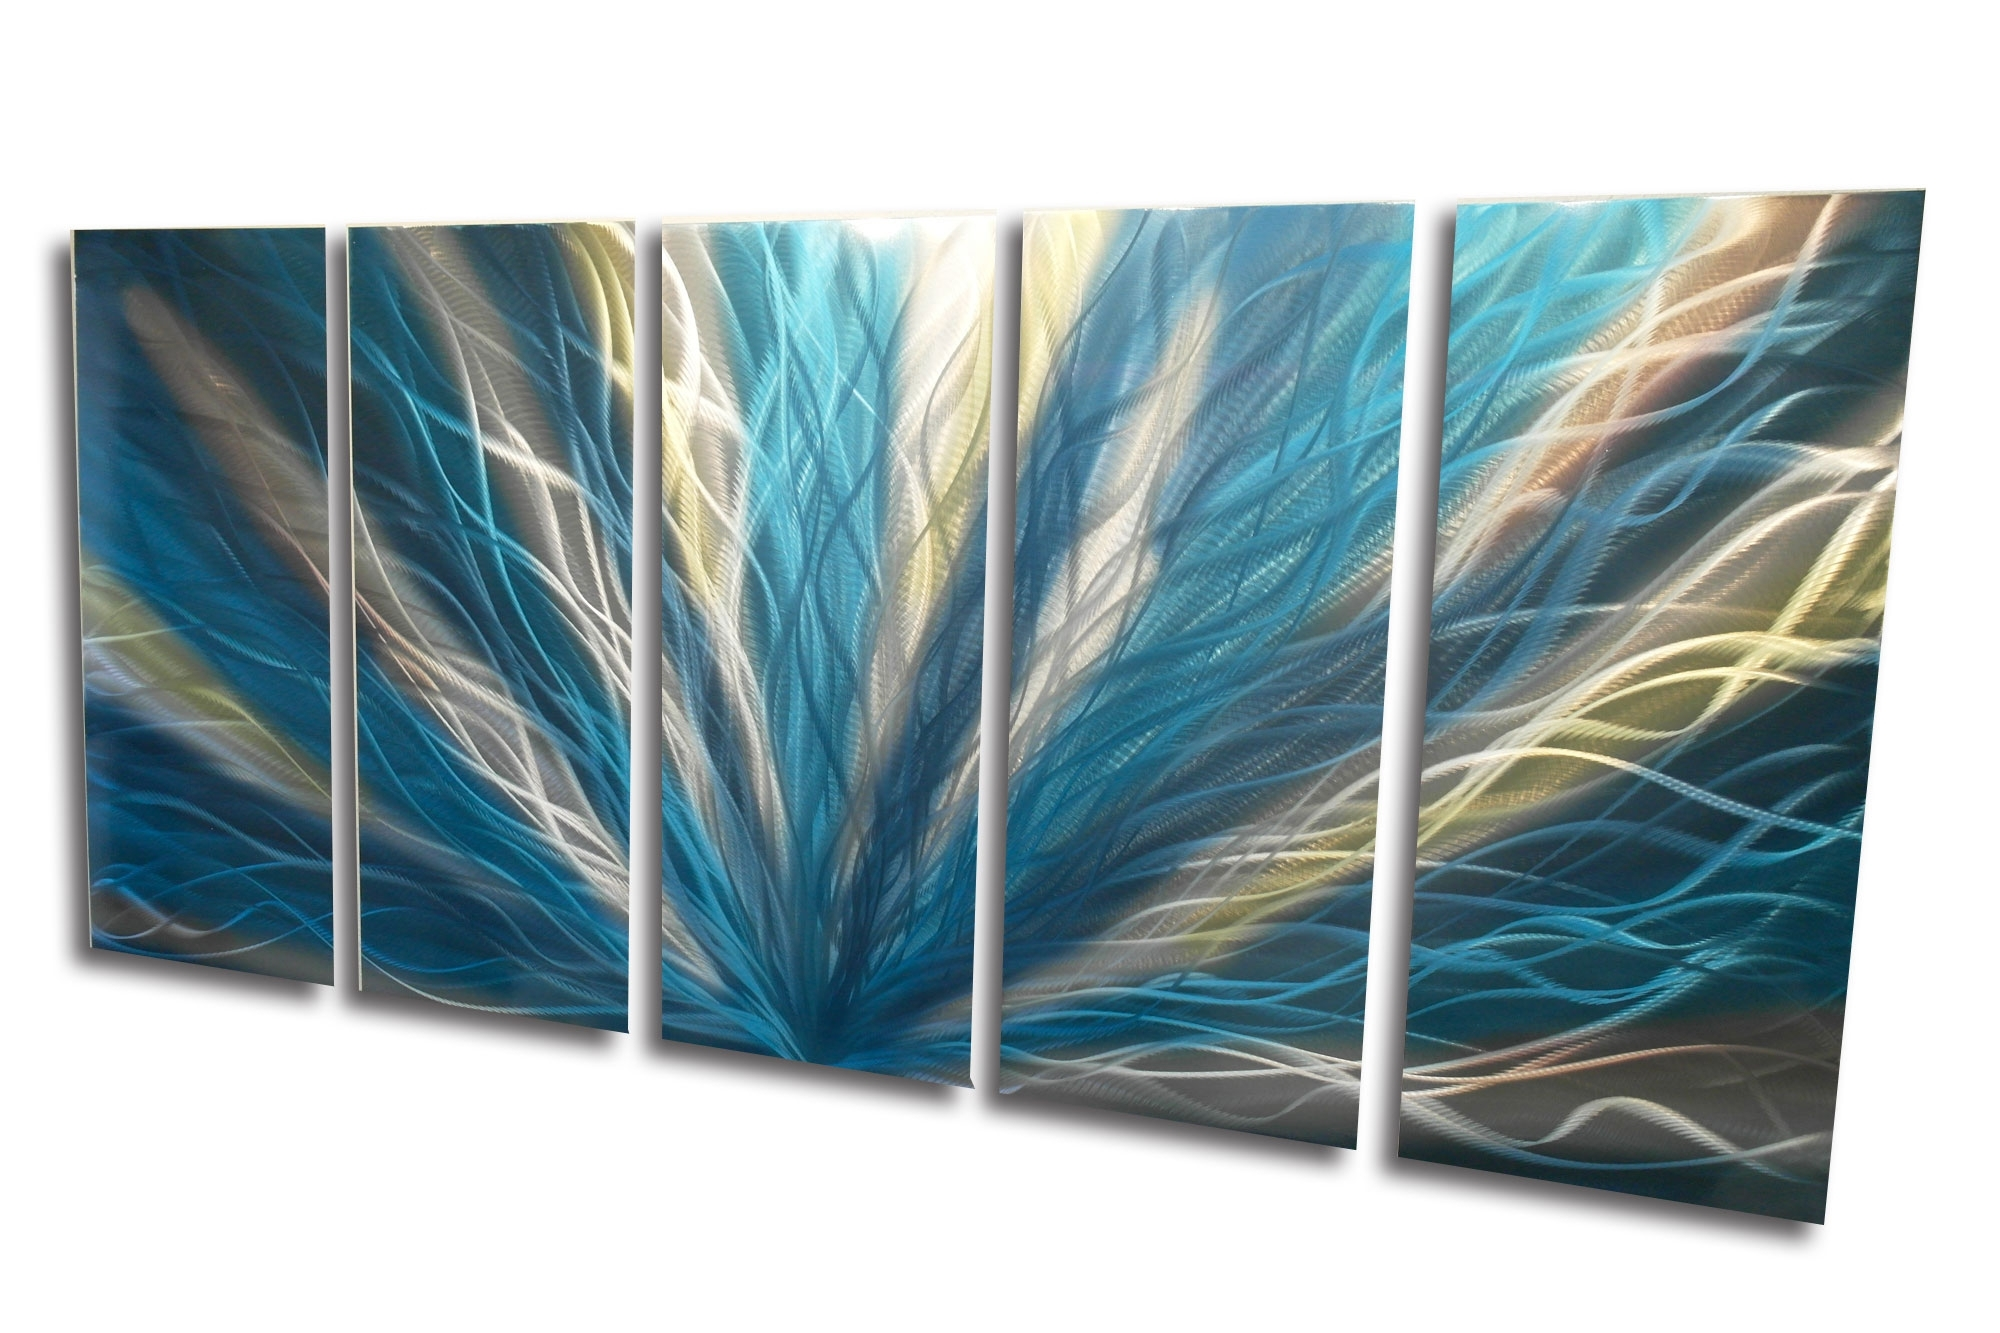 Radiance Teal 36X79 – Metal Wall Art Abstract Sculpture Modern Decor Regarding Widely Used Teal And Brown Wall Art (View 9 of 15)